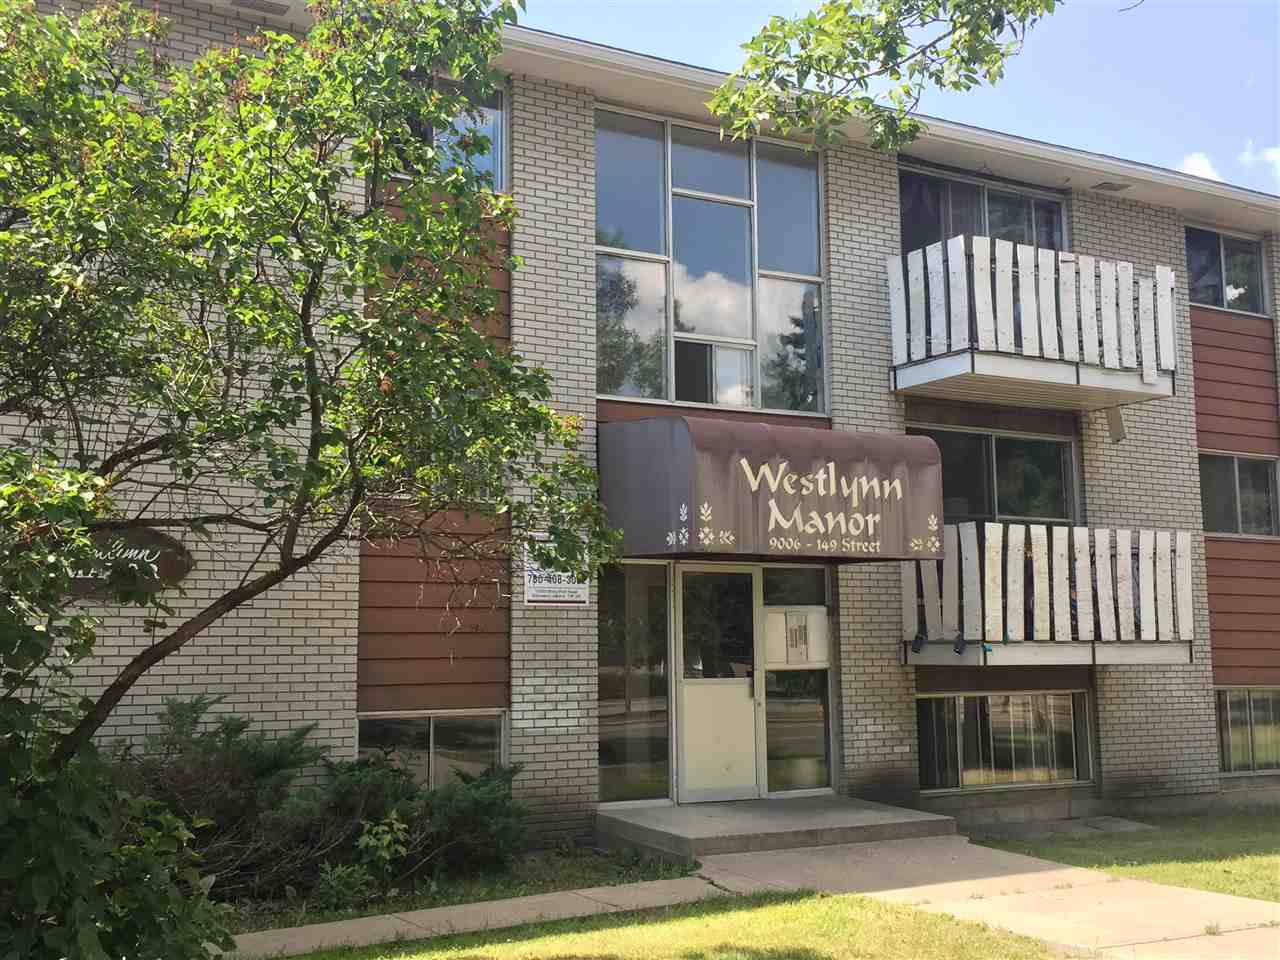 Main Photo: 106 9006 149 Street in Edmonton: Zone 22 Condo for sale : MLS® # E4074820